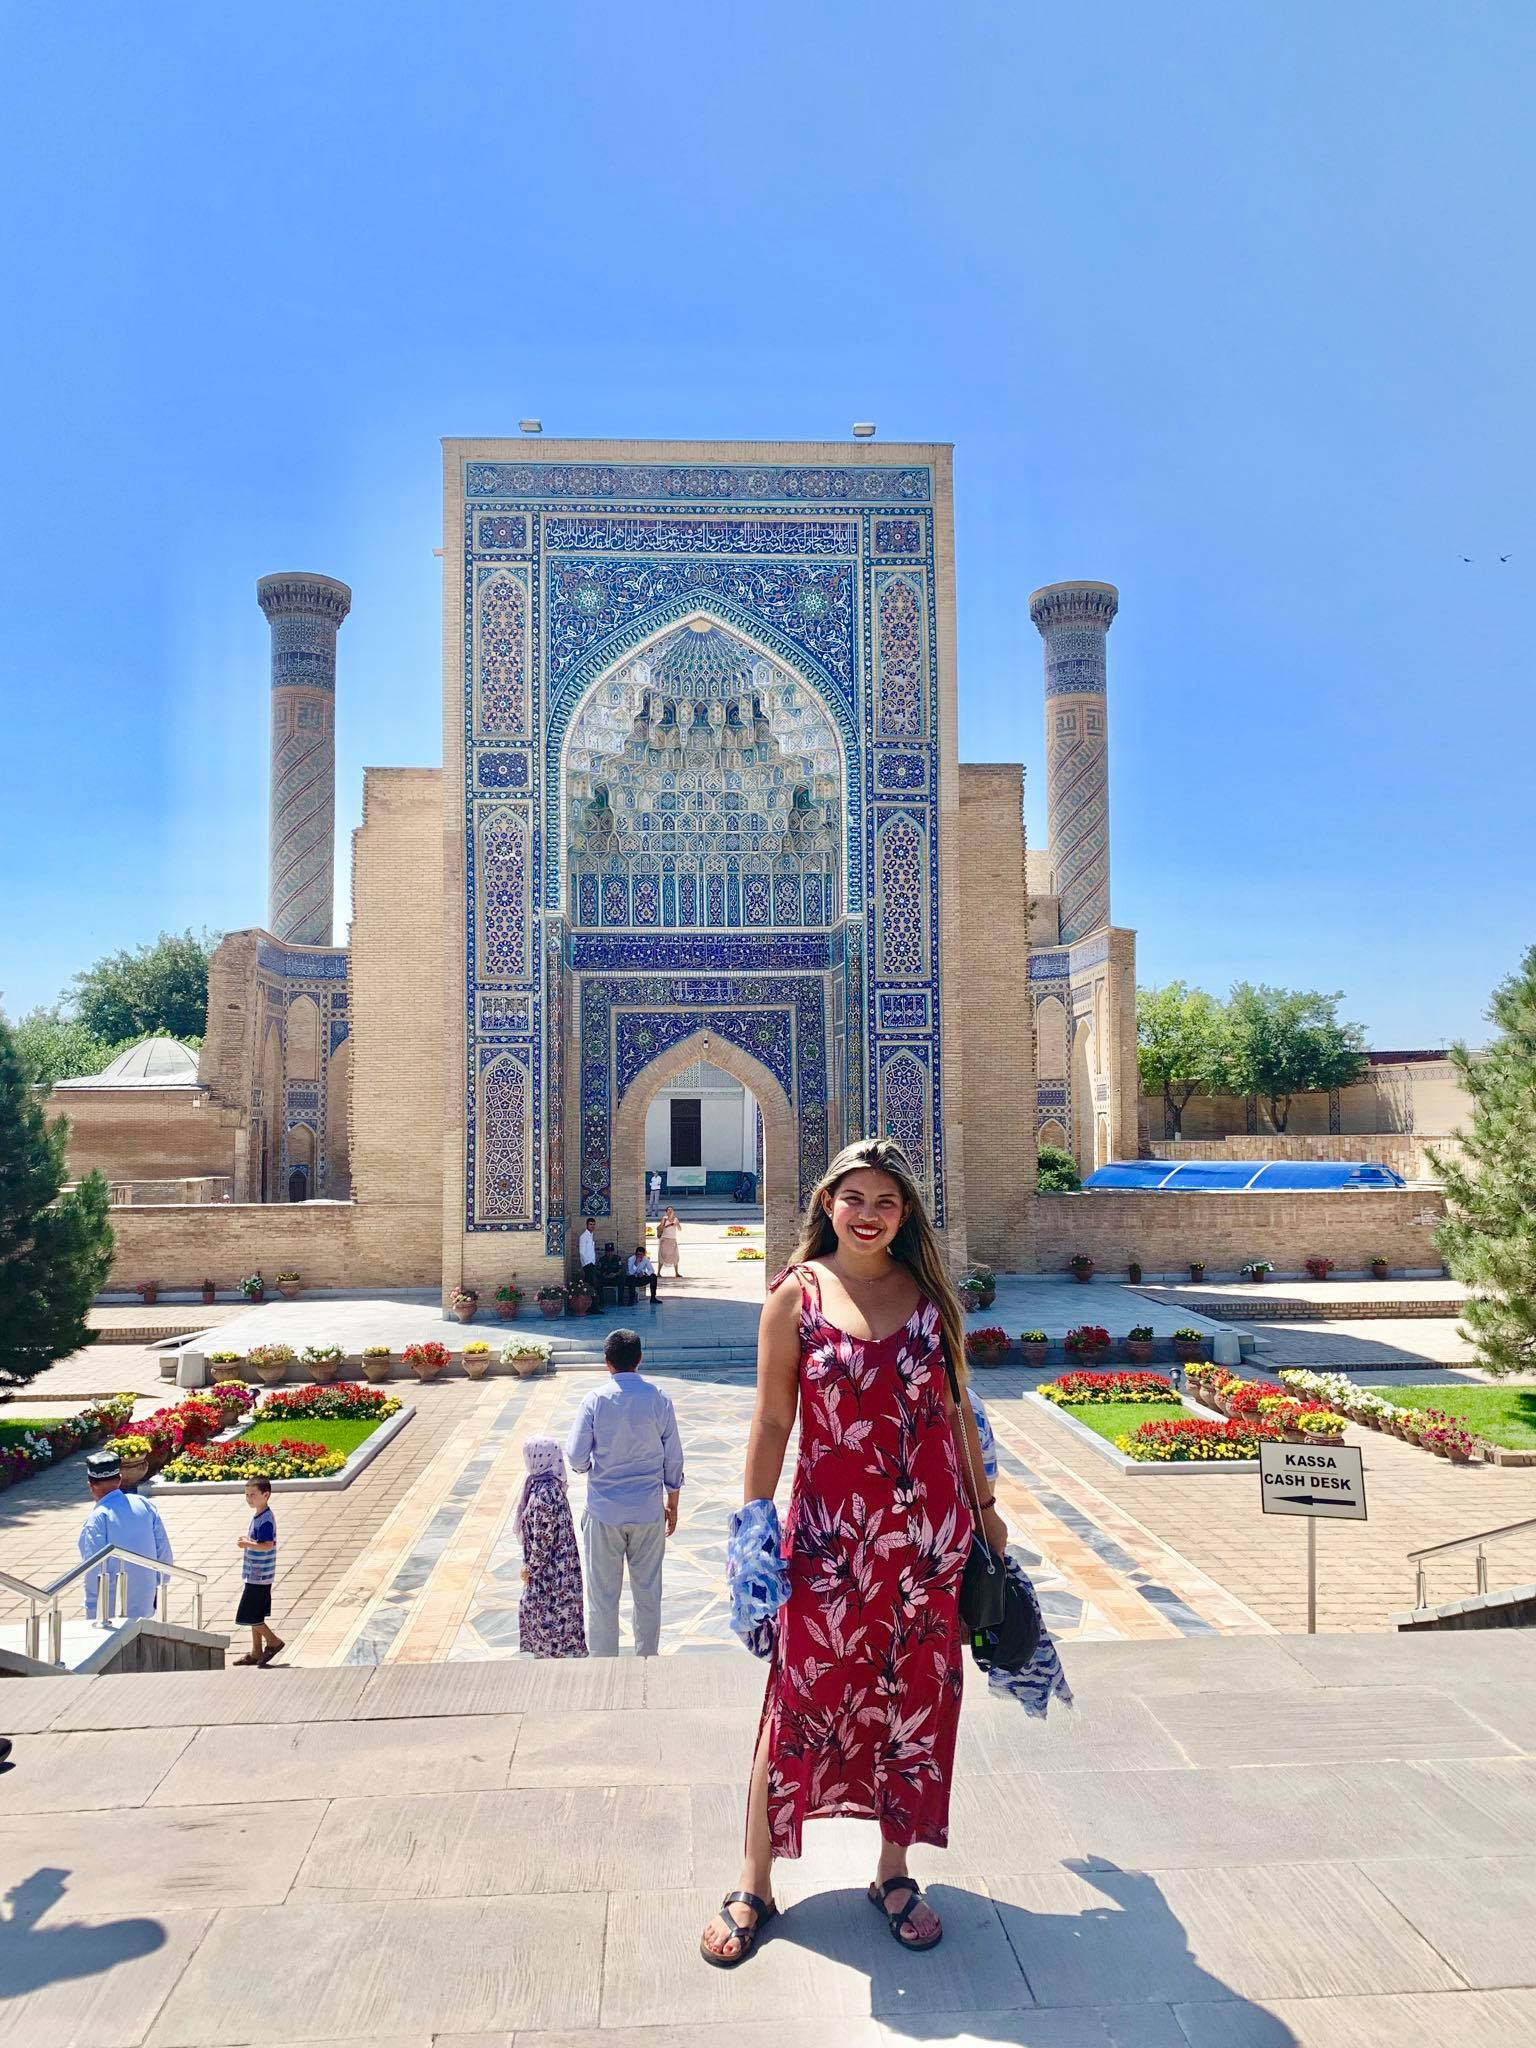 Kach Solo Travels in 2019 Hello from Samarqand  Samarkand in the southeastern part of Uzbekistan10.jpg